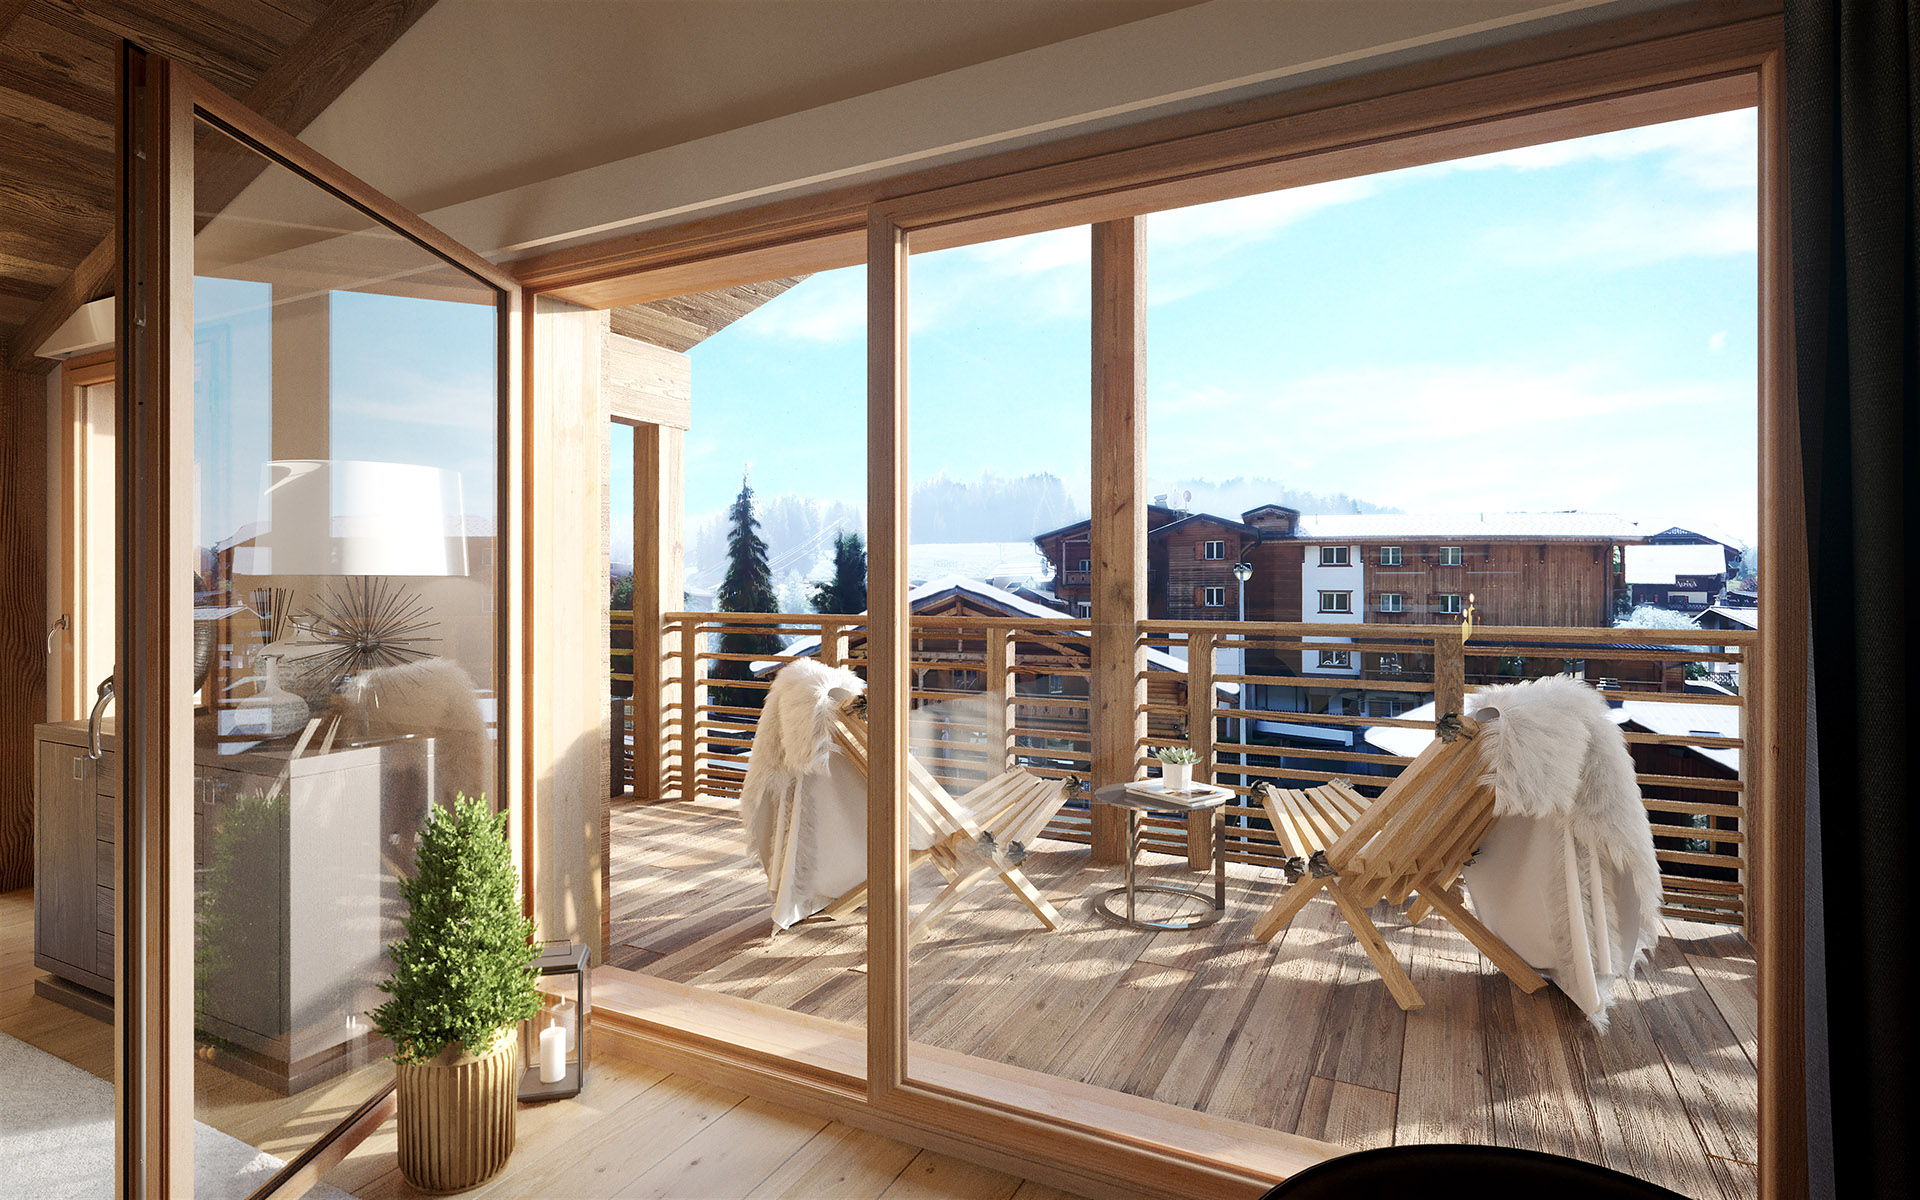 3D image of a balcony with deckchairs overlooking a mountain town